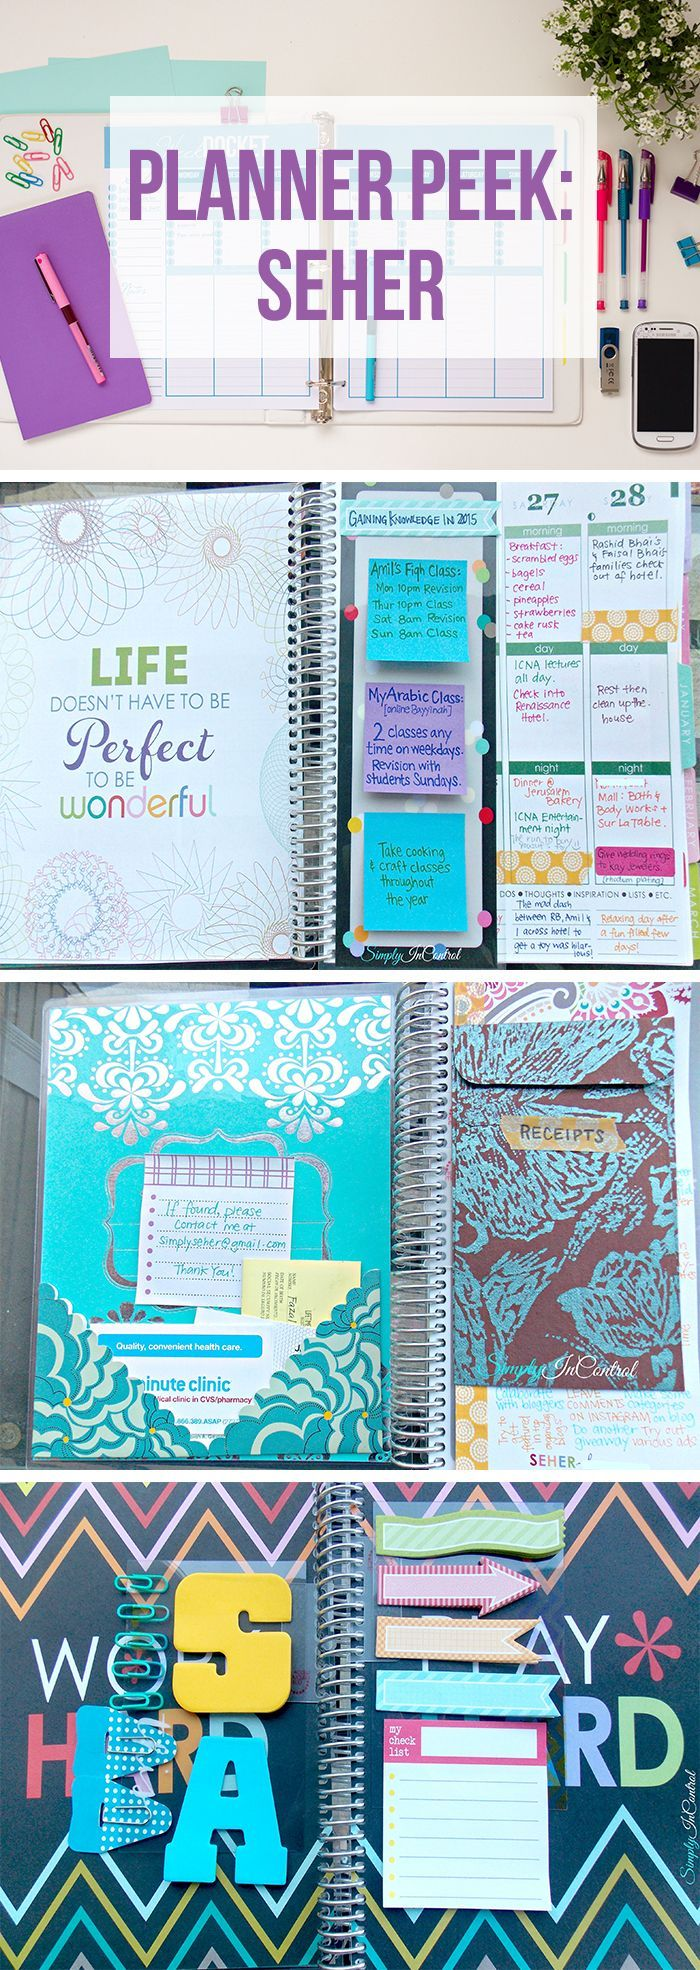 Calendar Life Planner : Best images about planners erin condren on pinterest